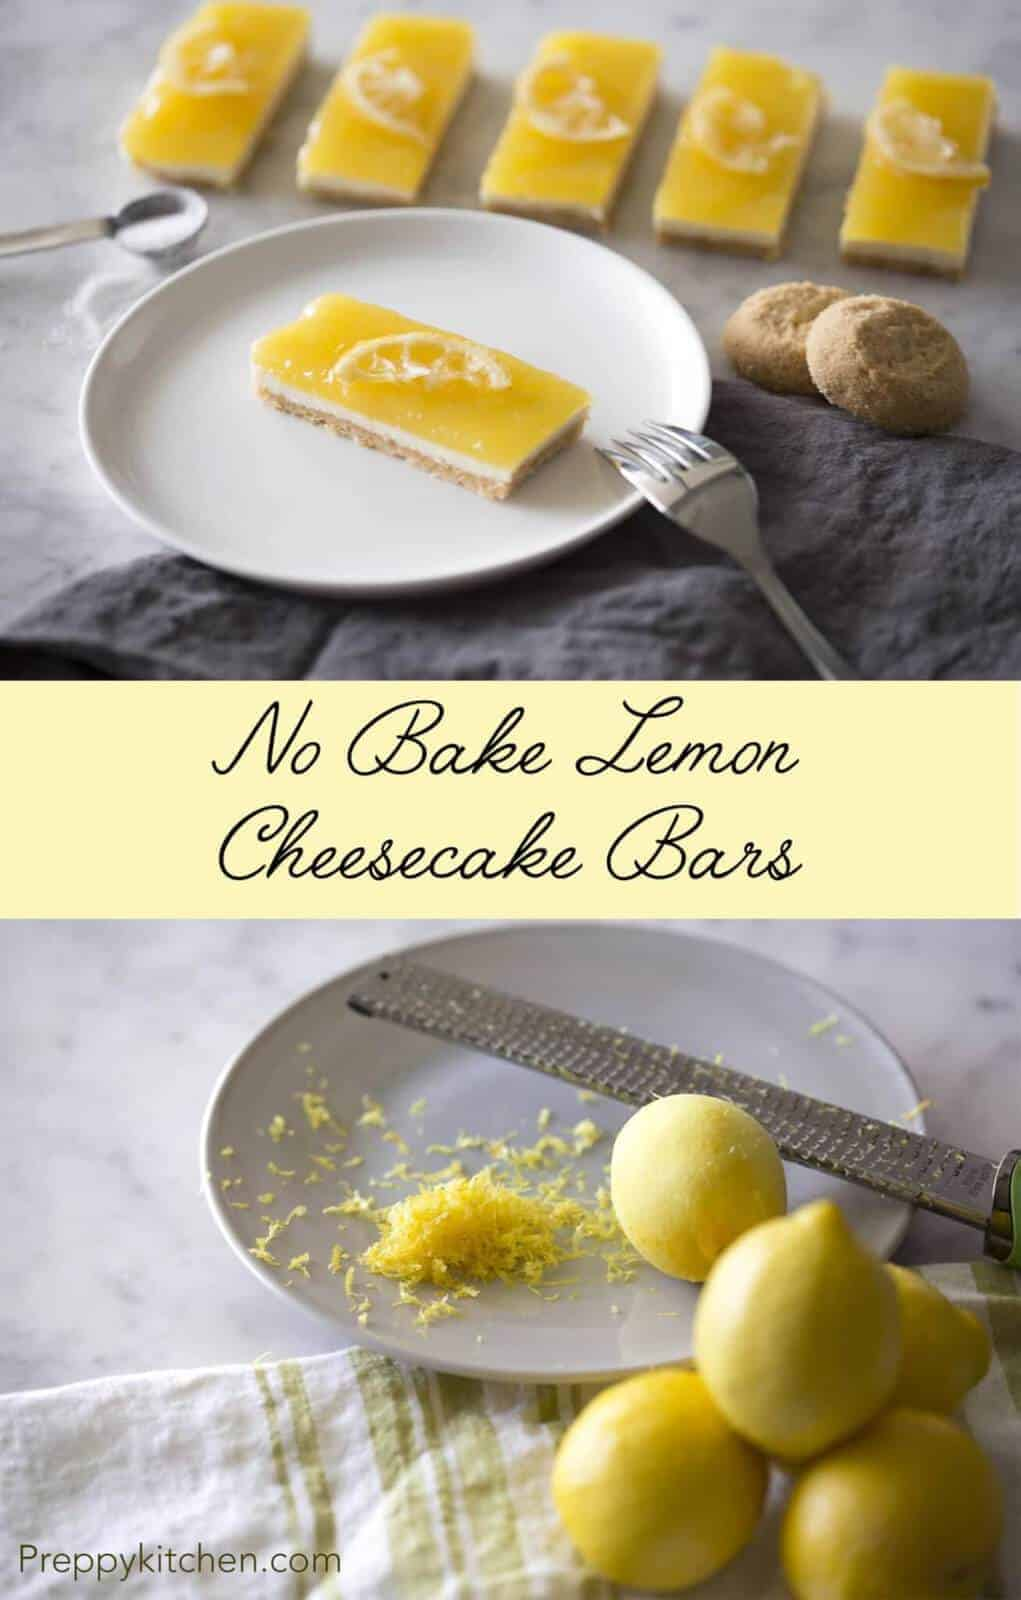 These no bake lemon cheesecake bars have a cookie crust, creamy cheesecake middle and zingy lemon curd making for a great combo. Click over for full recipe and video.